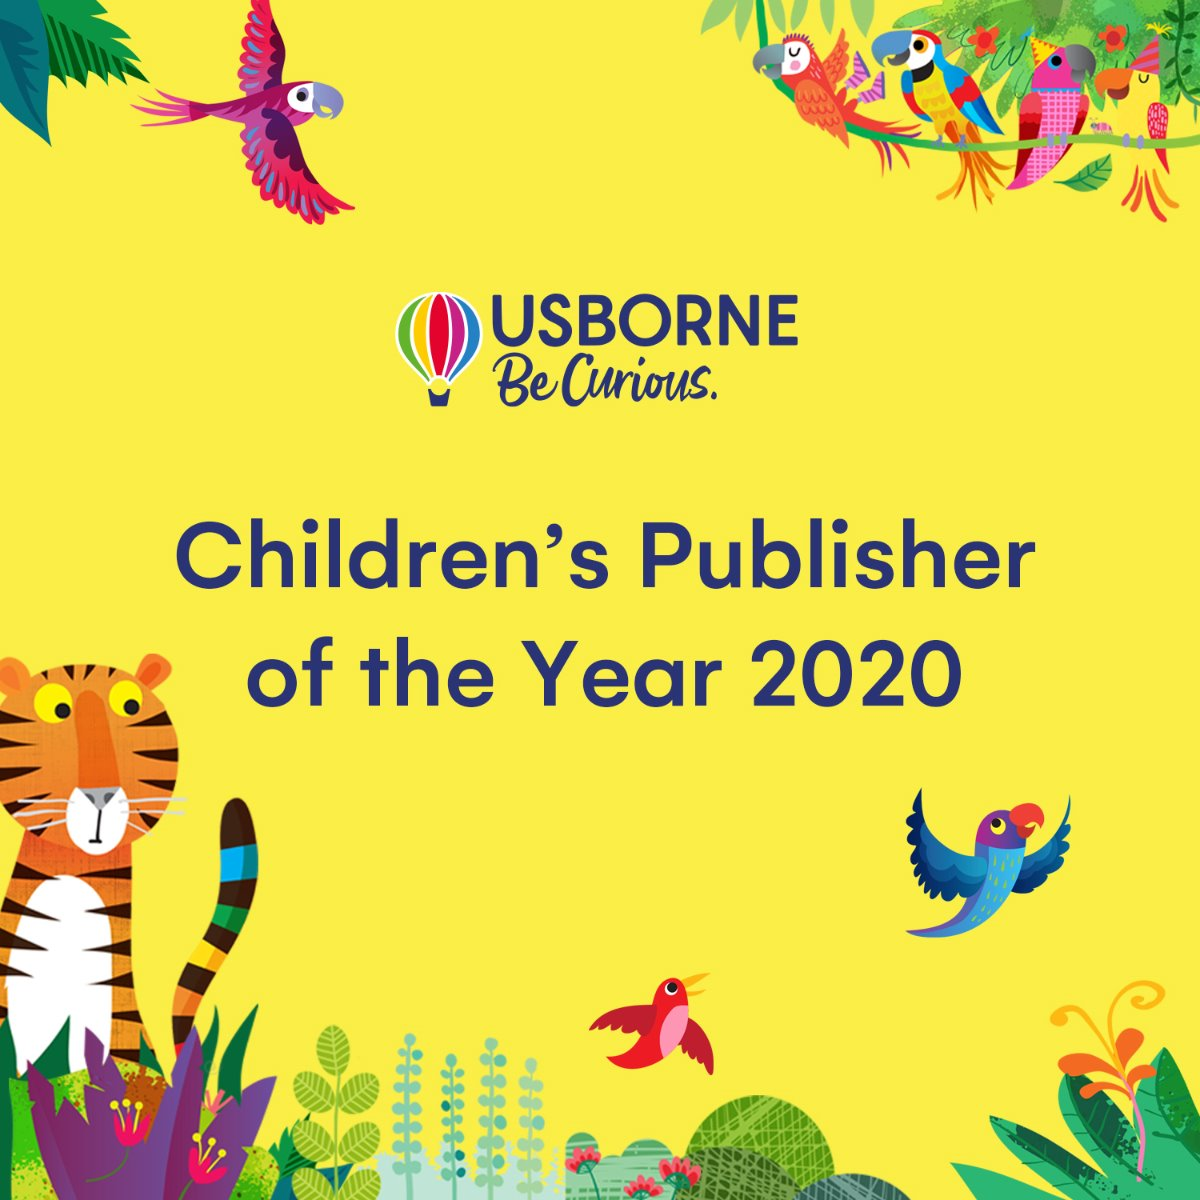 Usborne: Children's Publisher of the Year 2020